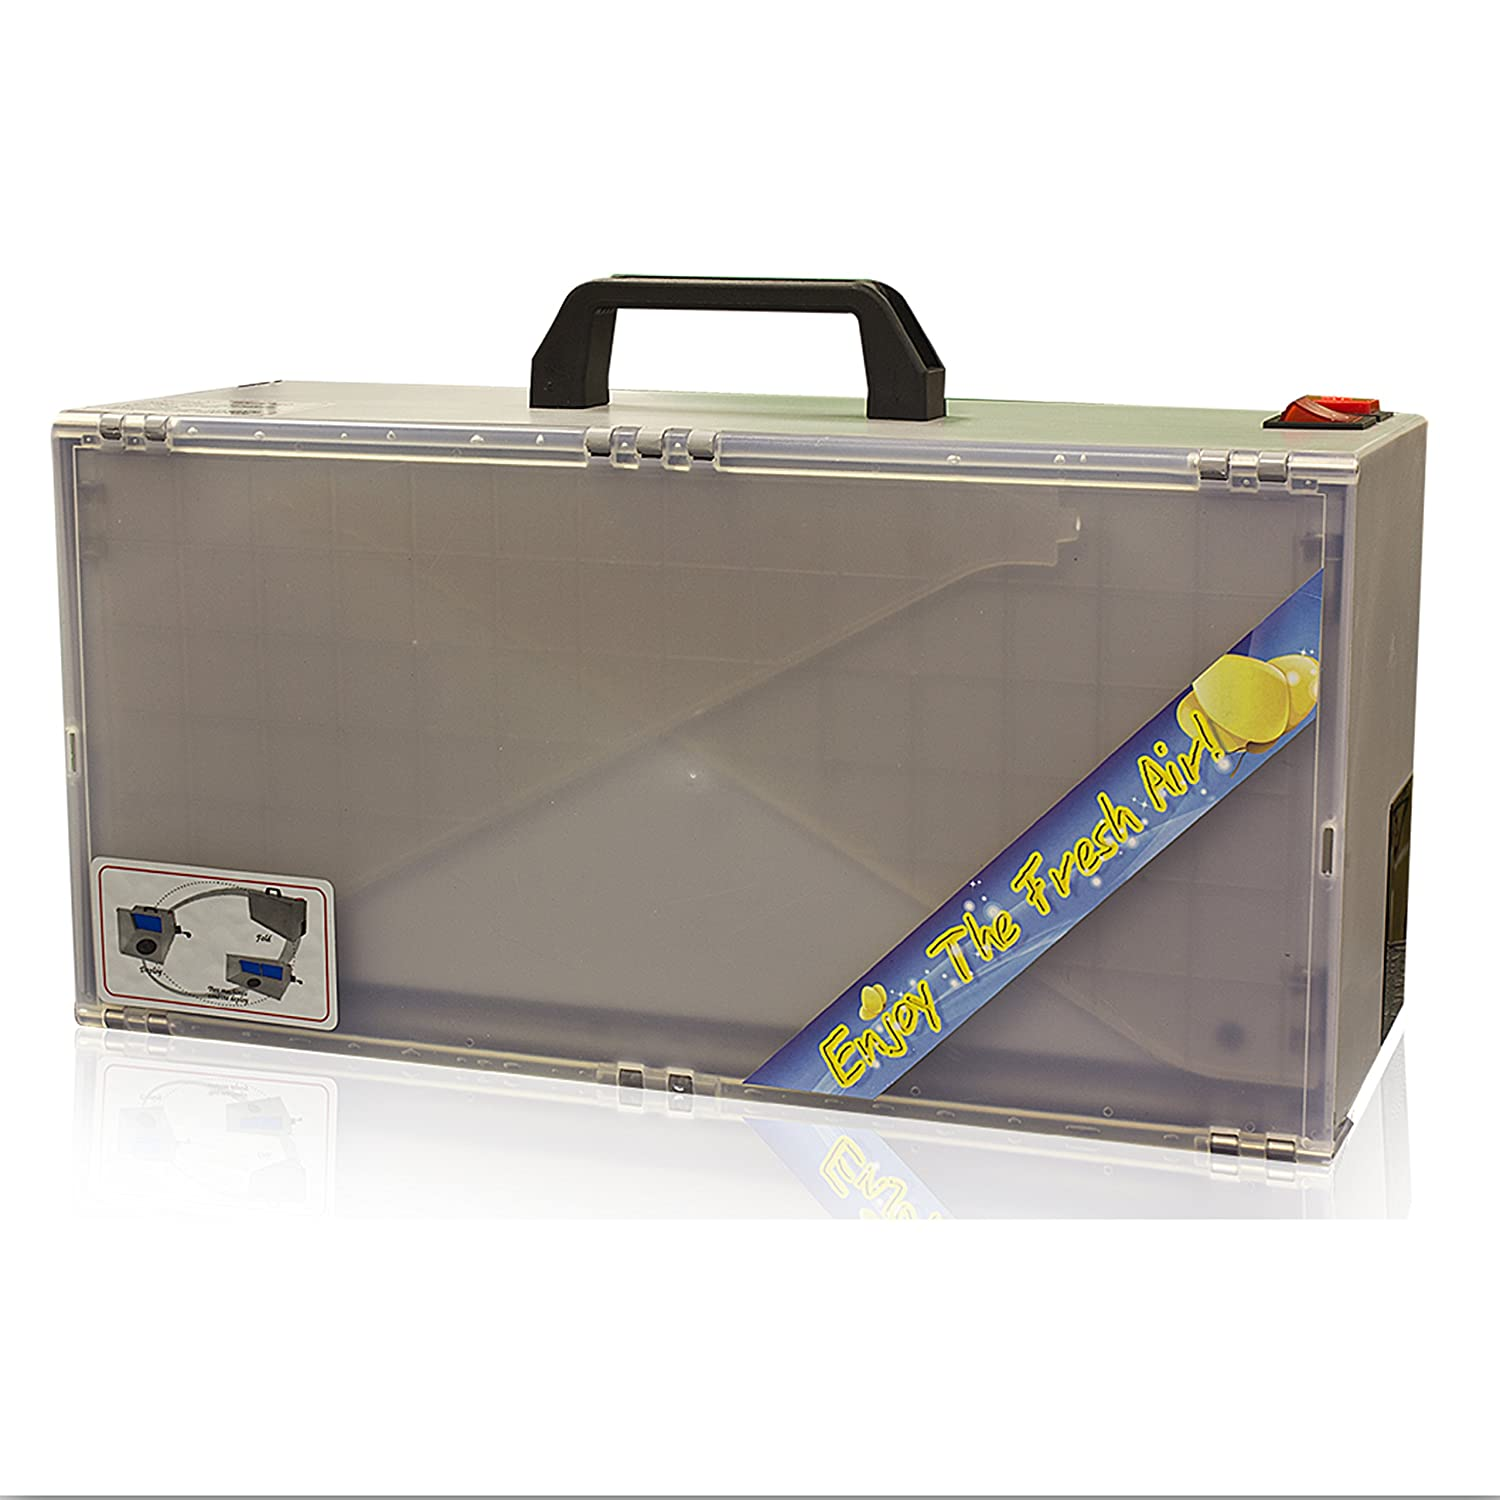 Best Choice Products Airbrush Spray Booth Kit Paint Craft Odor Extractor Hobby Crafts Figurines Beige